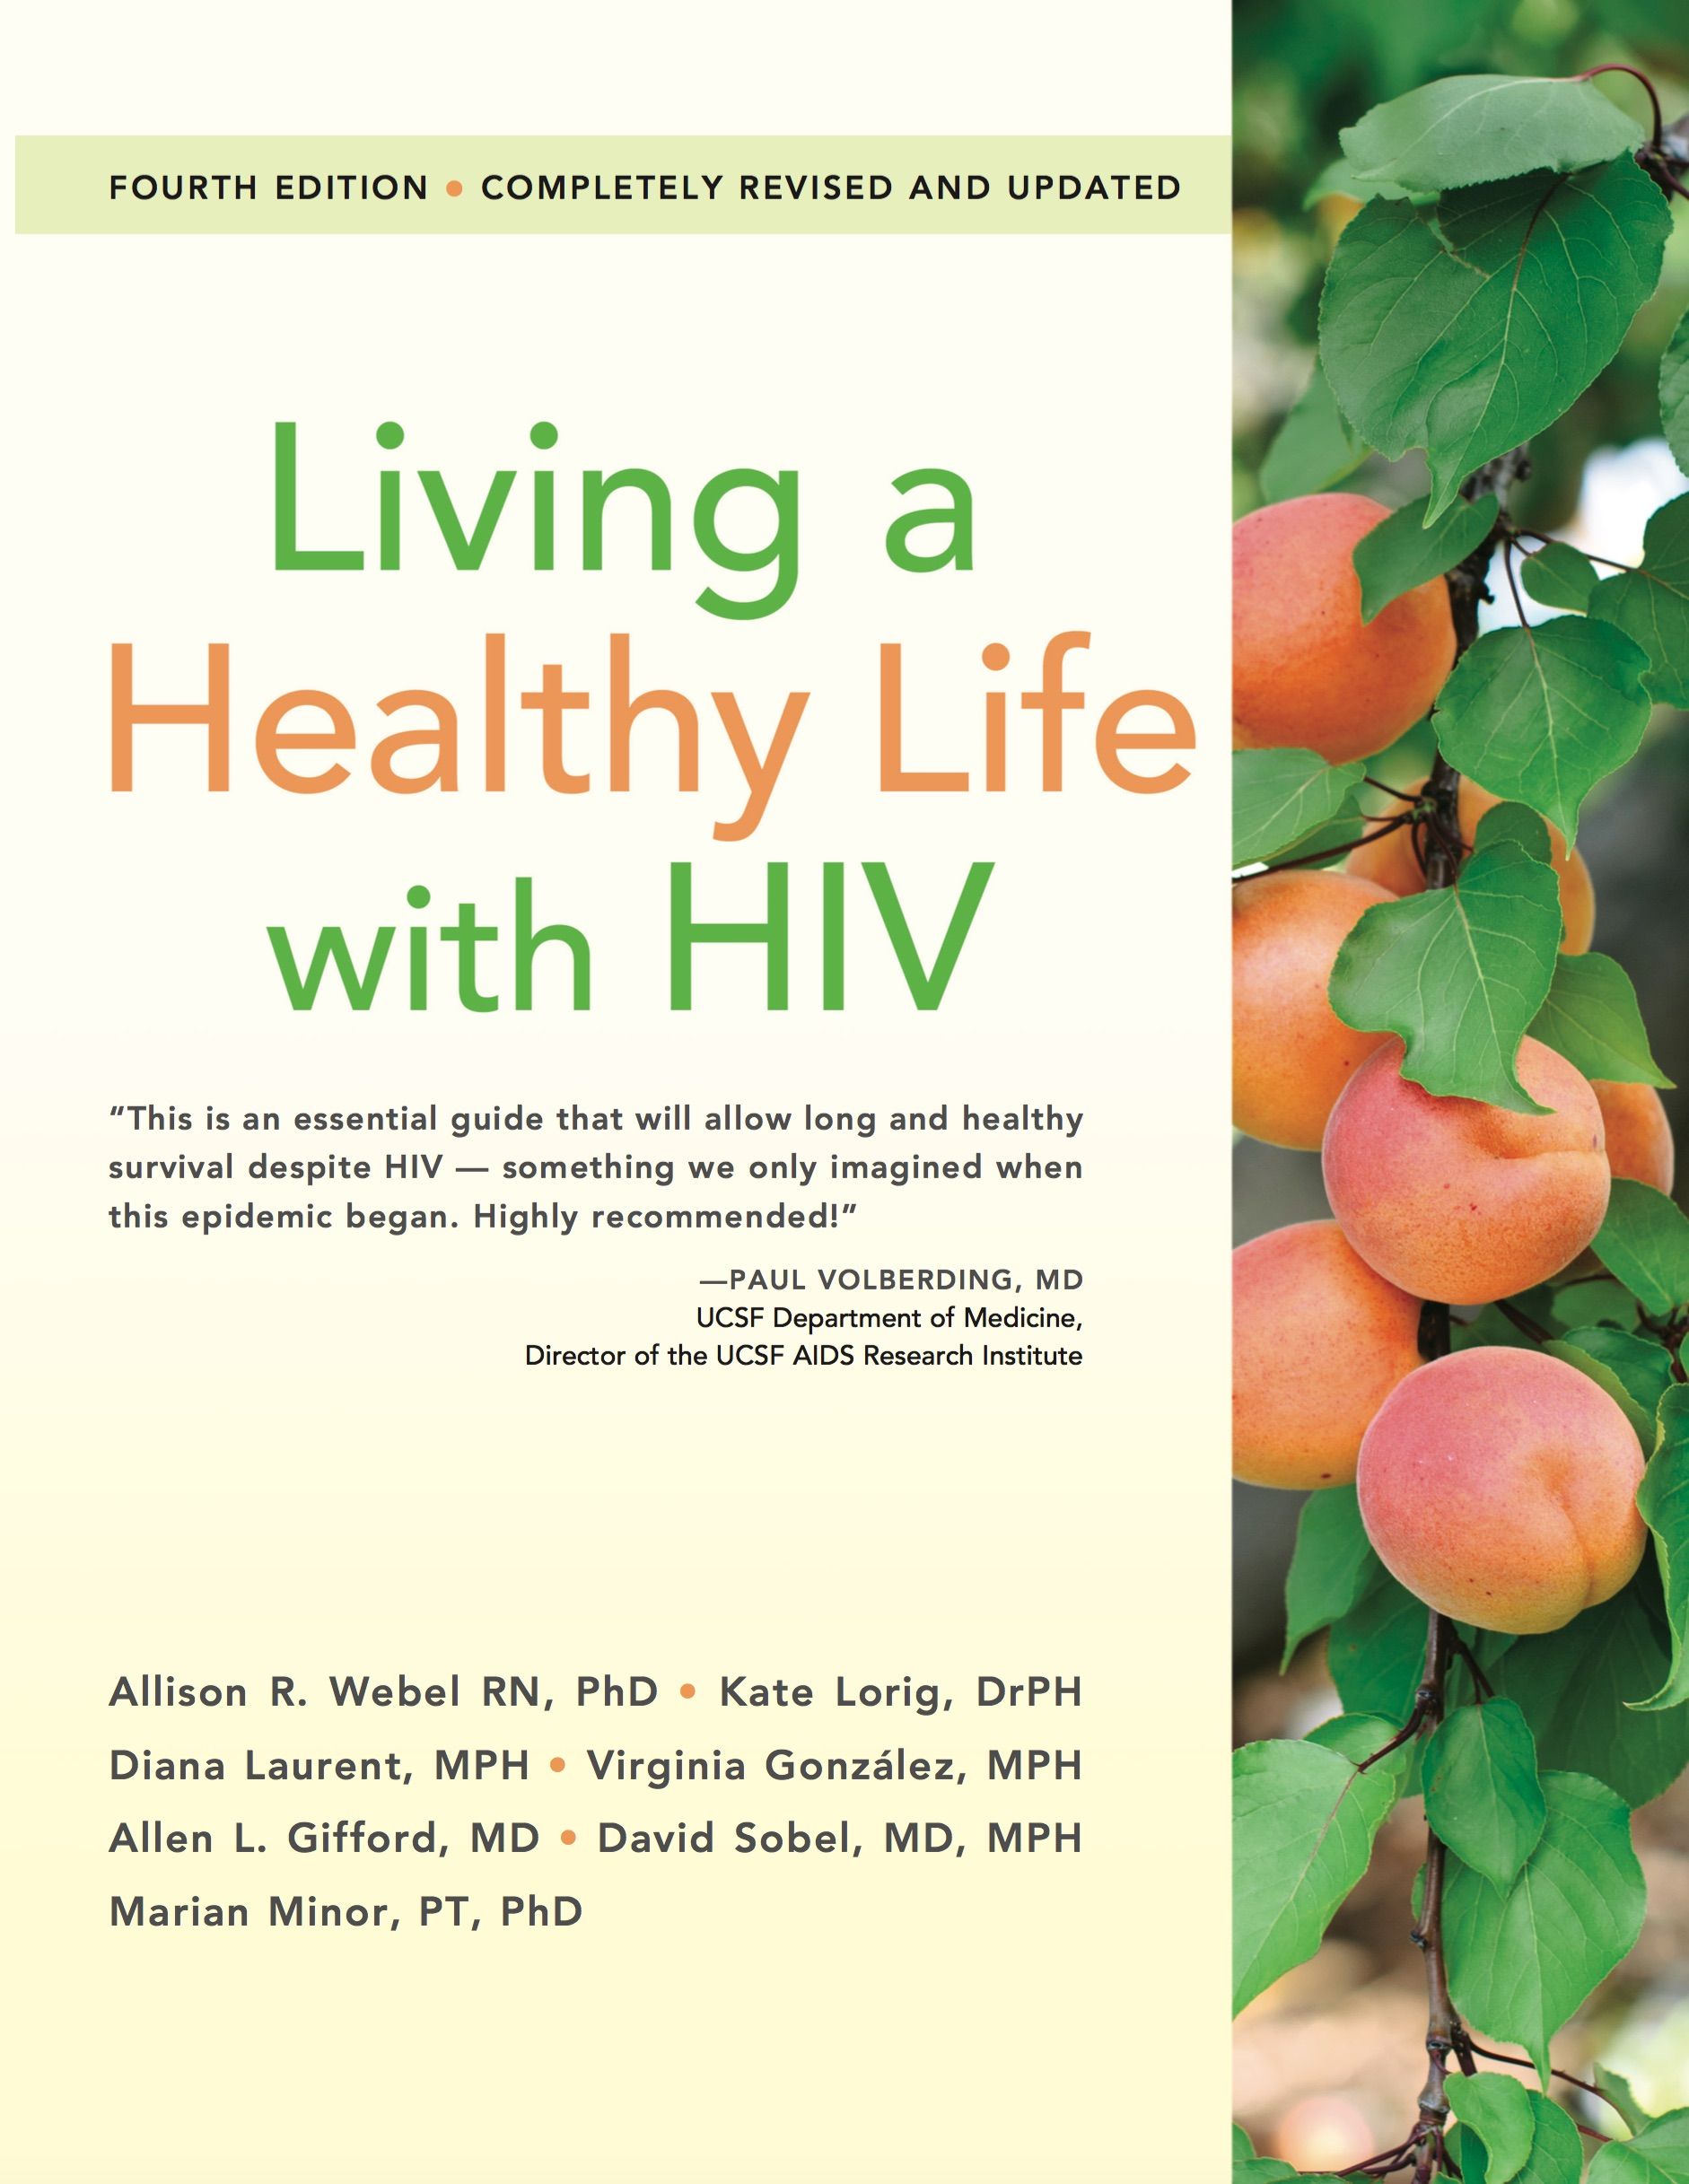 Lhl with hiv 4th cover